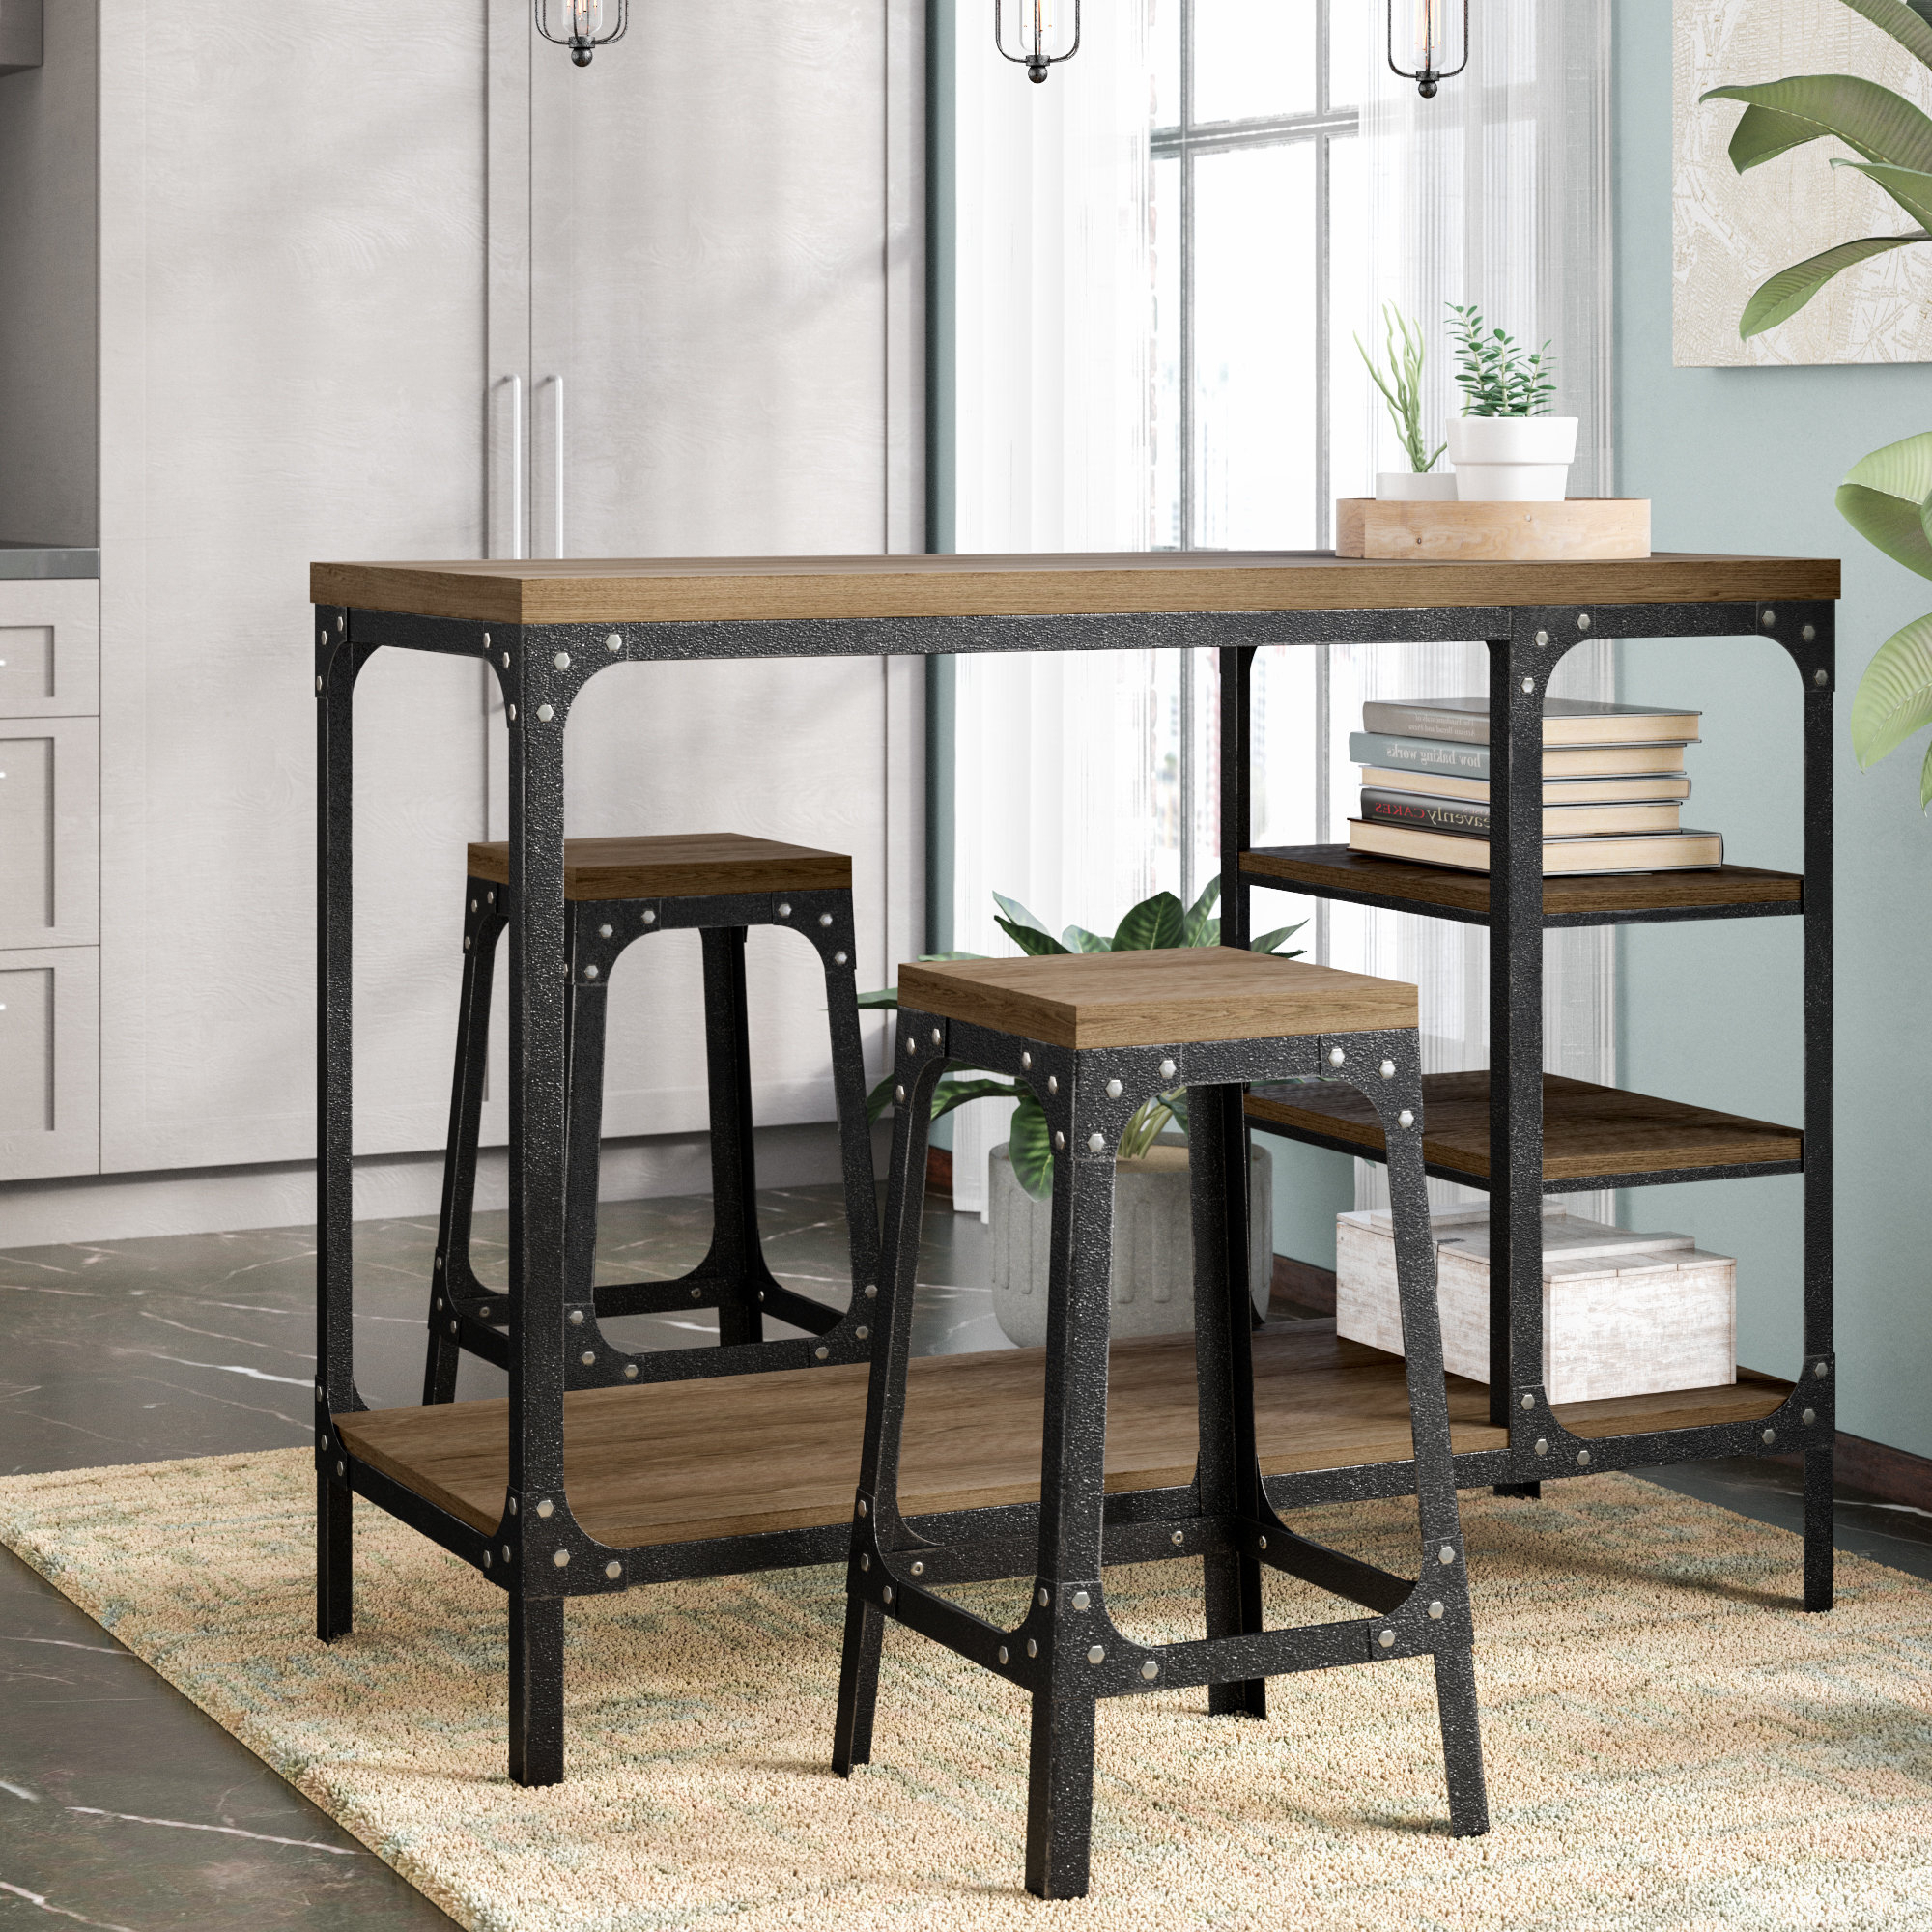 3 Piece Breakfast Dining Sets Inside Most Popular Terence 3 Piece Breakfast Nook Dining Set (Gallery 9 of 20)